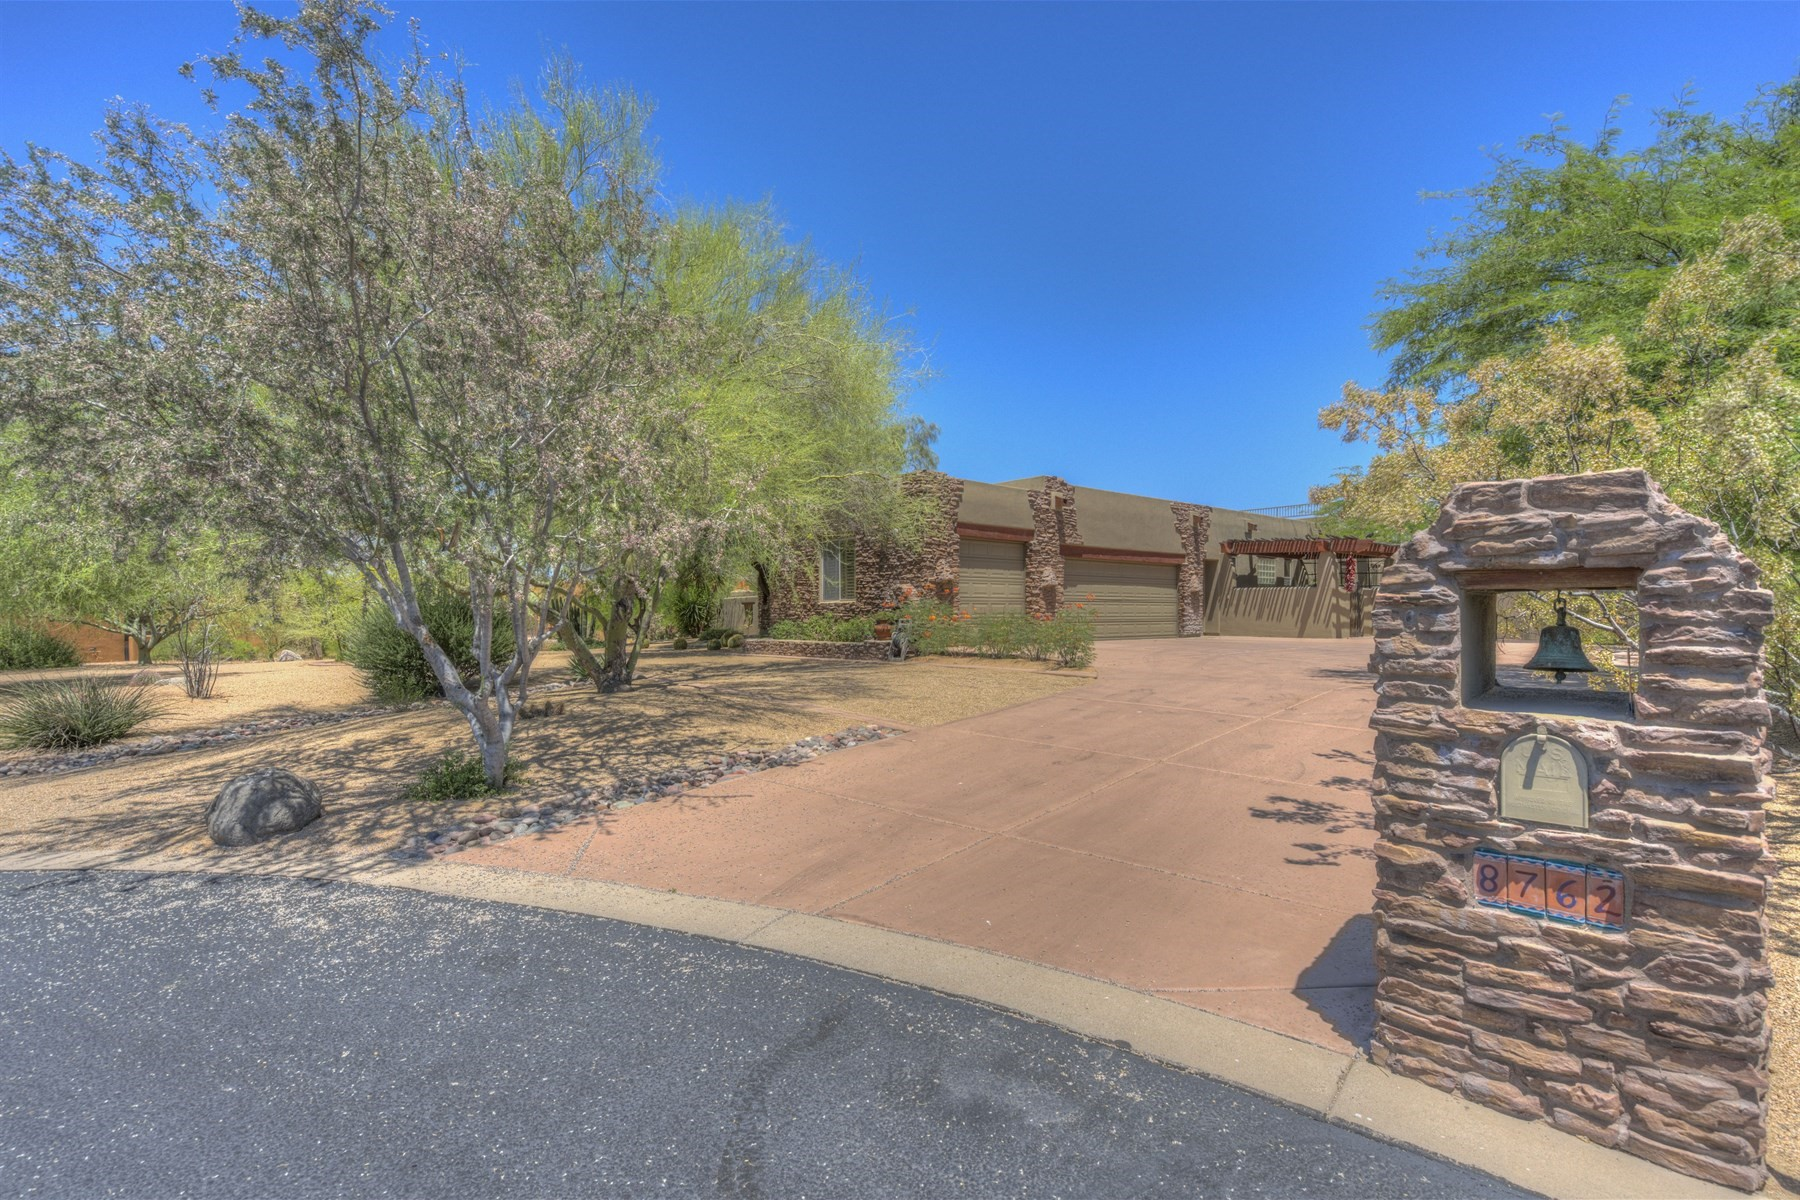 Single Family Home for Sale at Beautiful single story home in Desert Springd 8762 E Arroyo Seco Rd Scottsdale, Arizona, 85266 United States